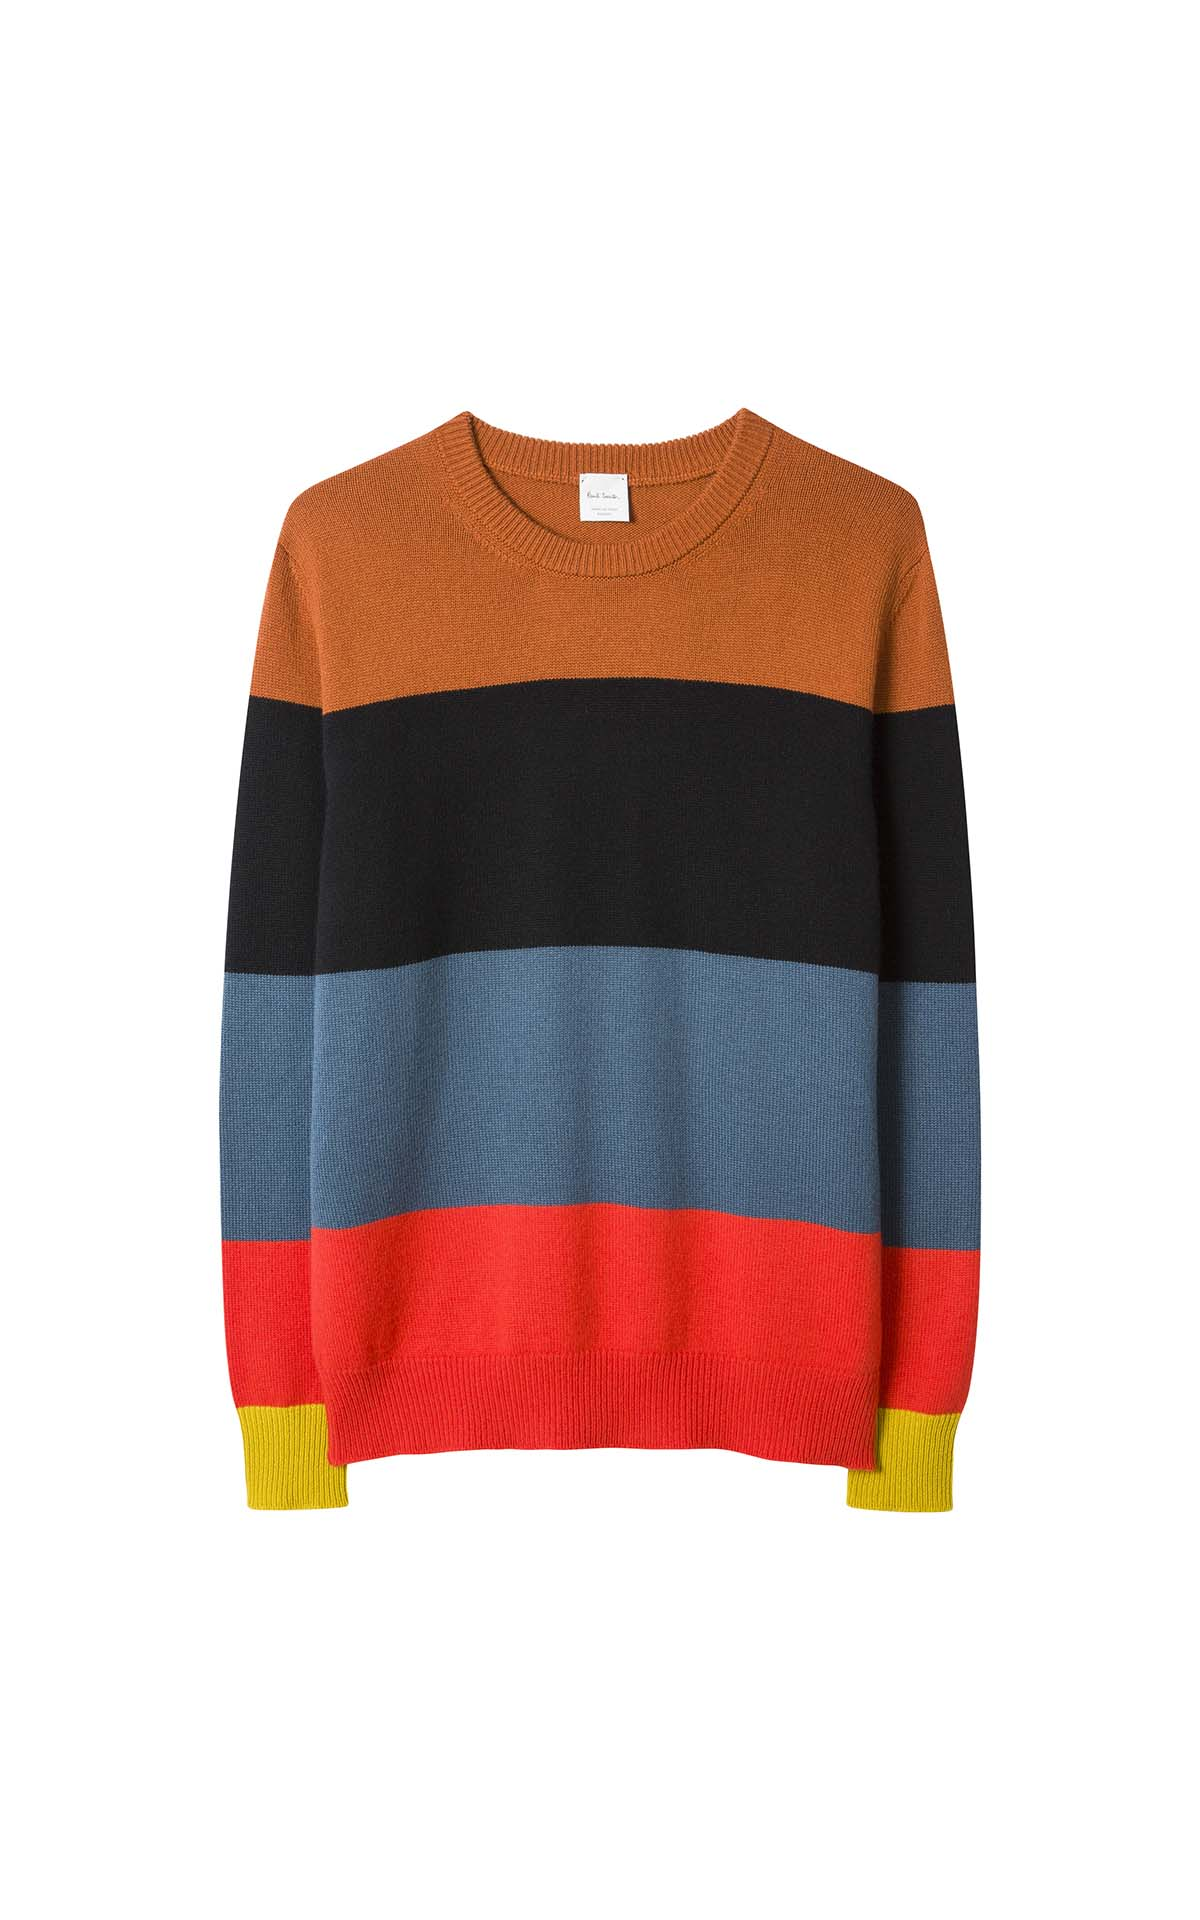 Paul Smith's pullover crew neck at The Bicester Village Shopping Collection